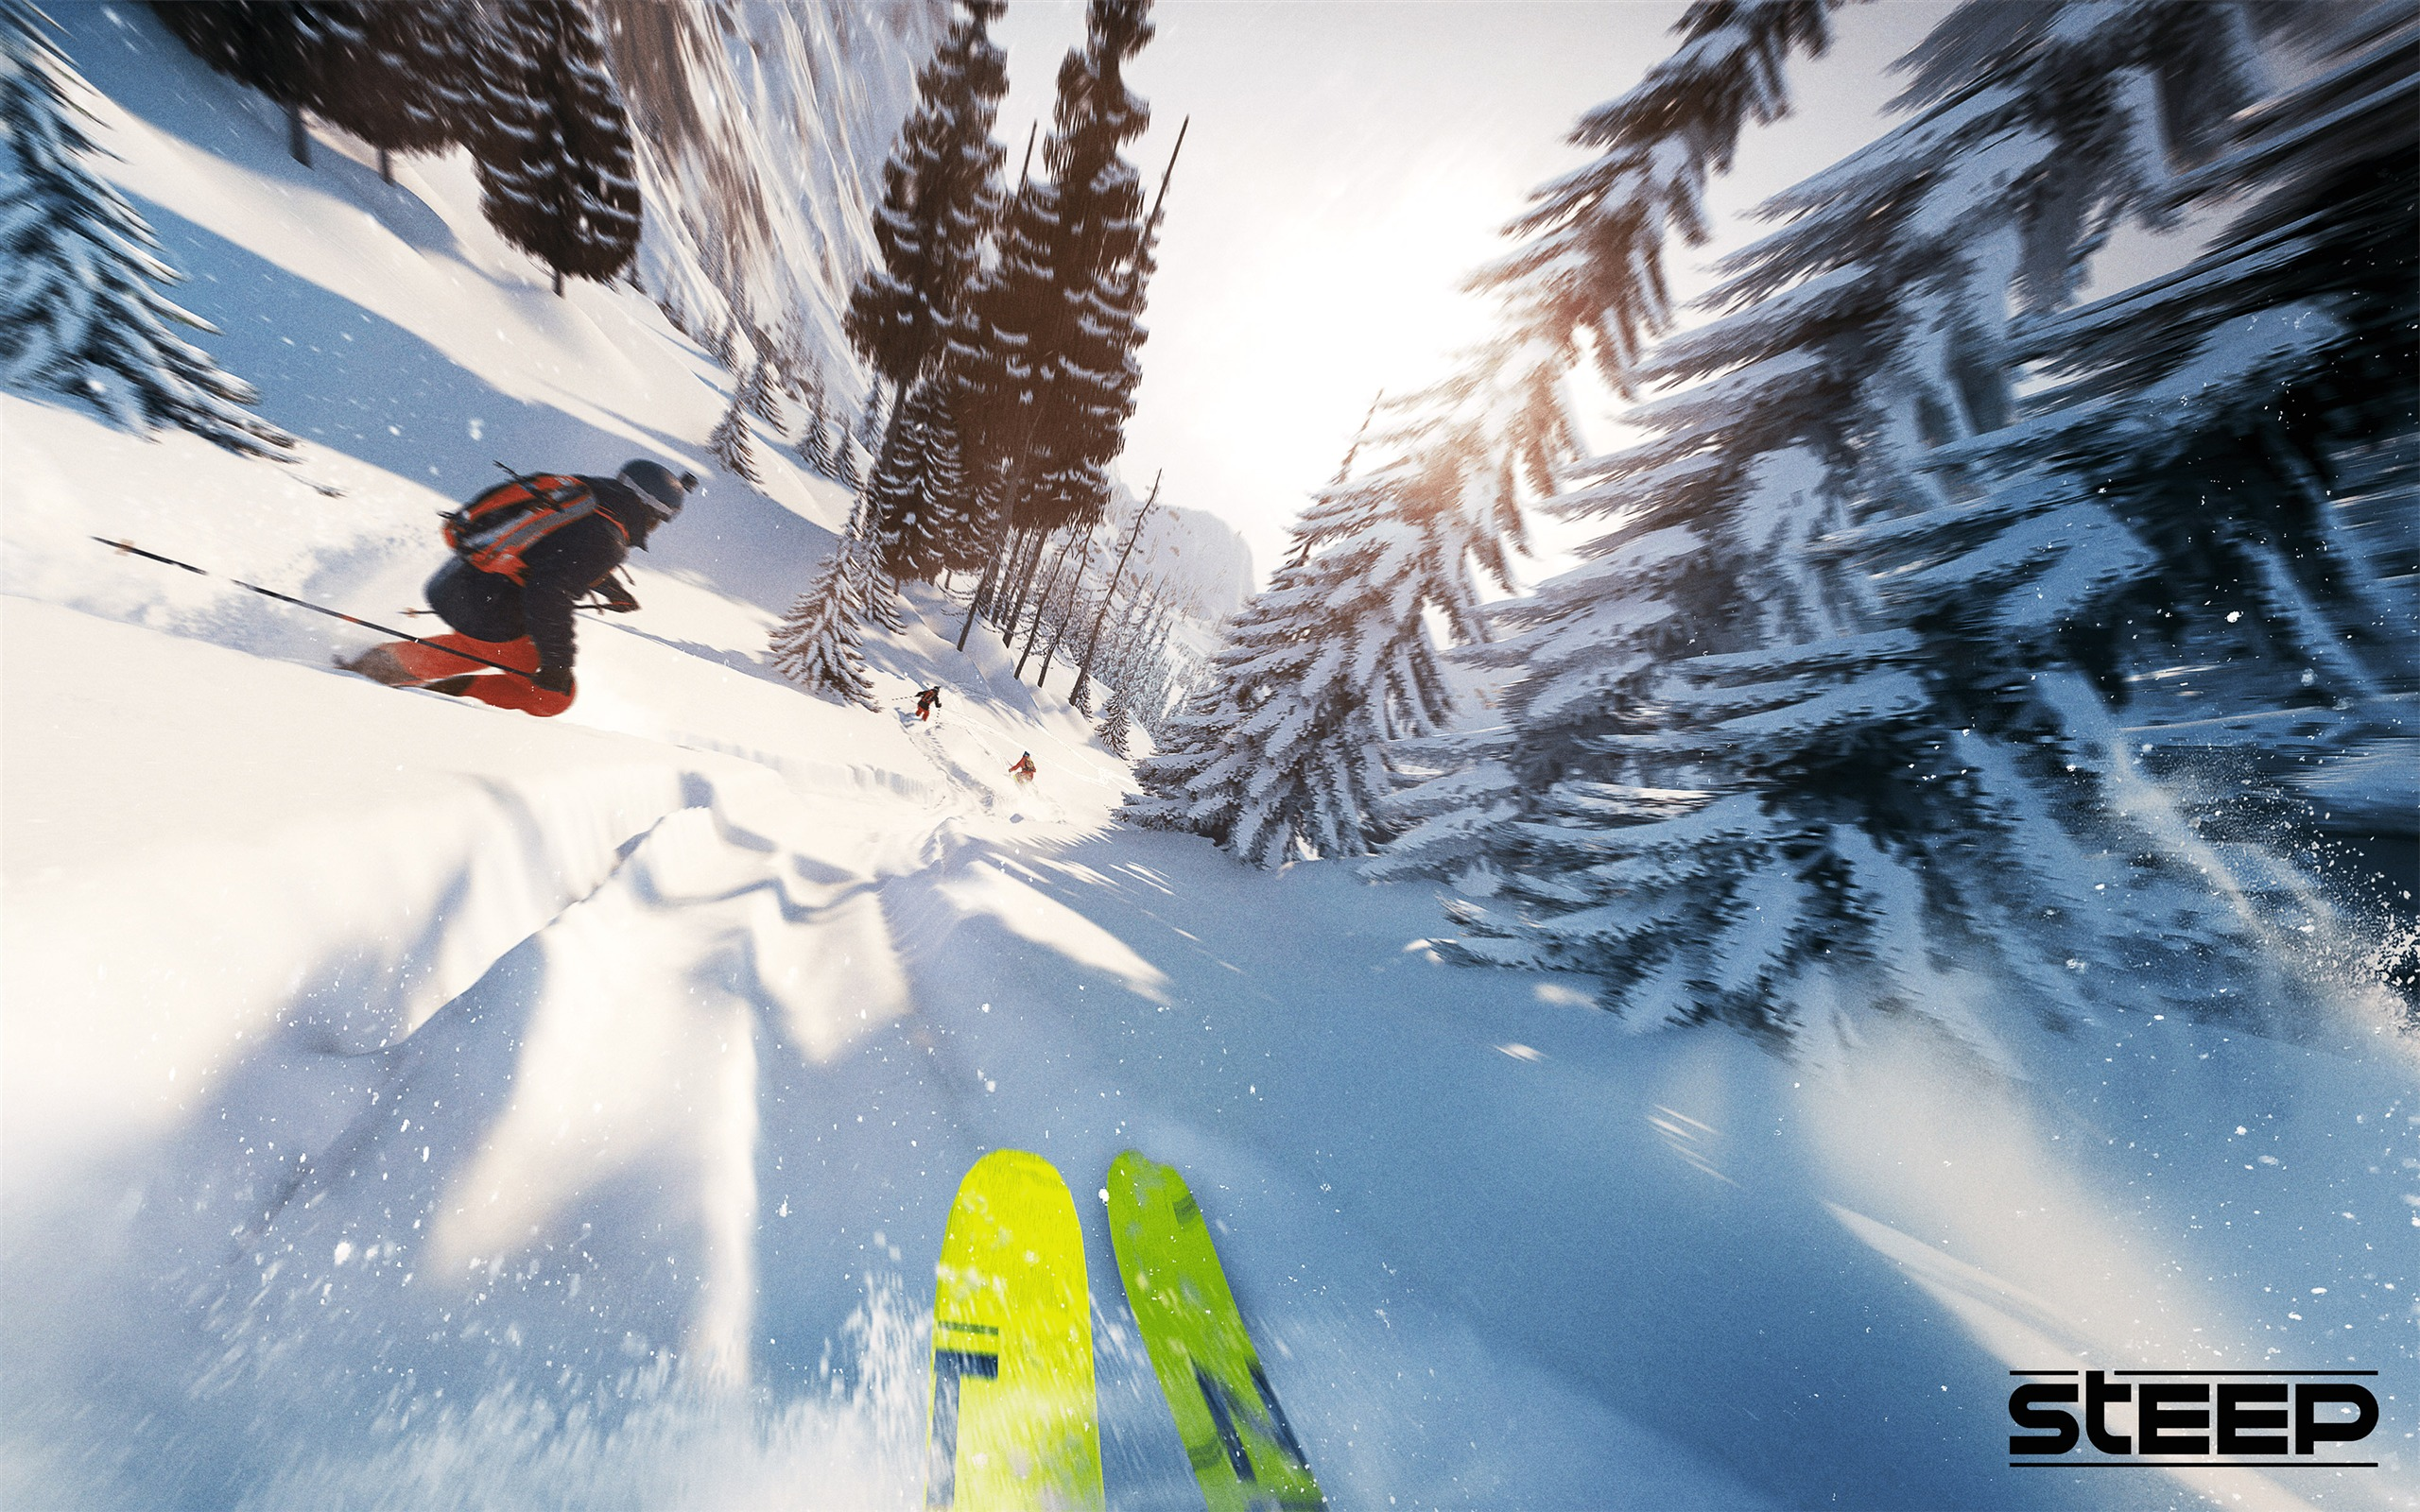 Ski competition Steep Game 4K - 2560x1600 wallpaper download